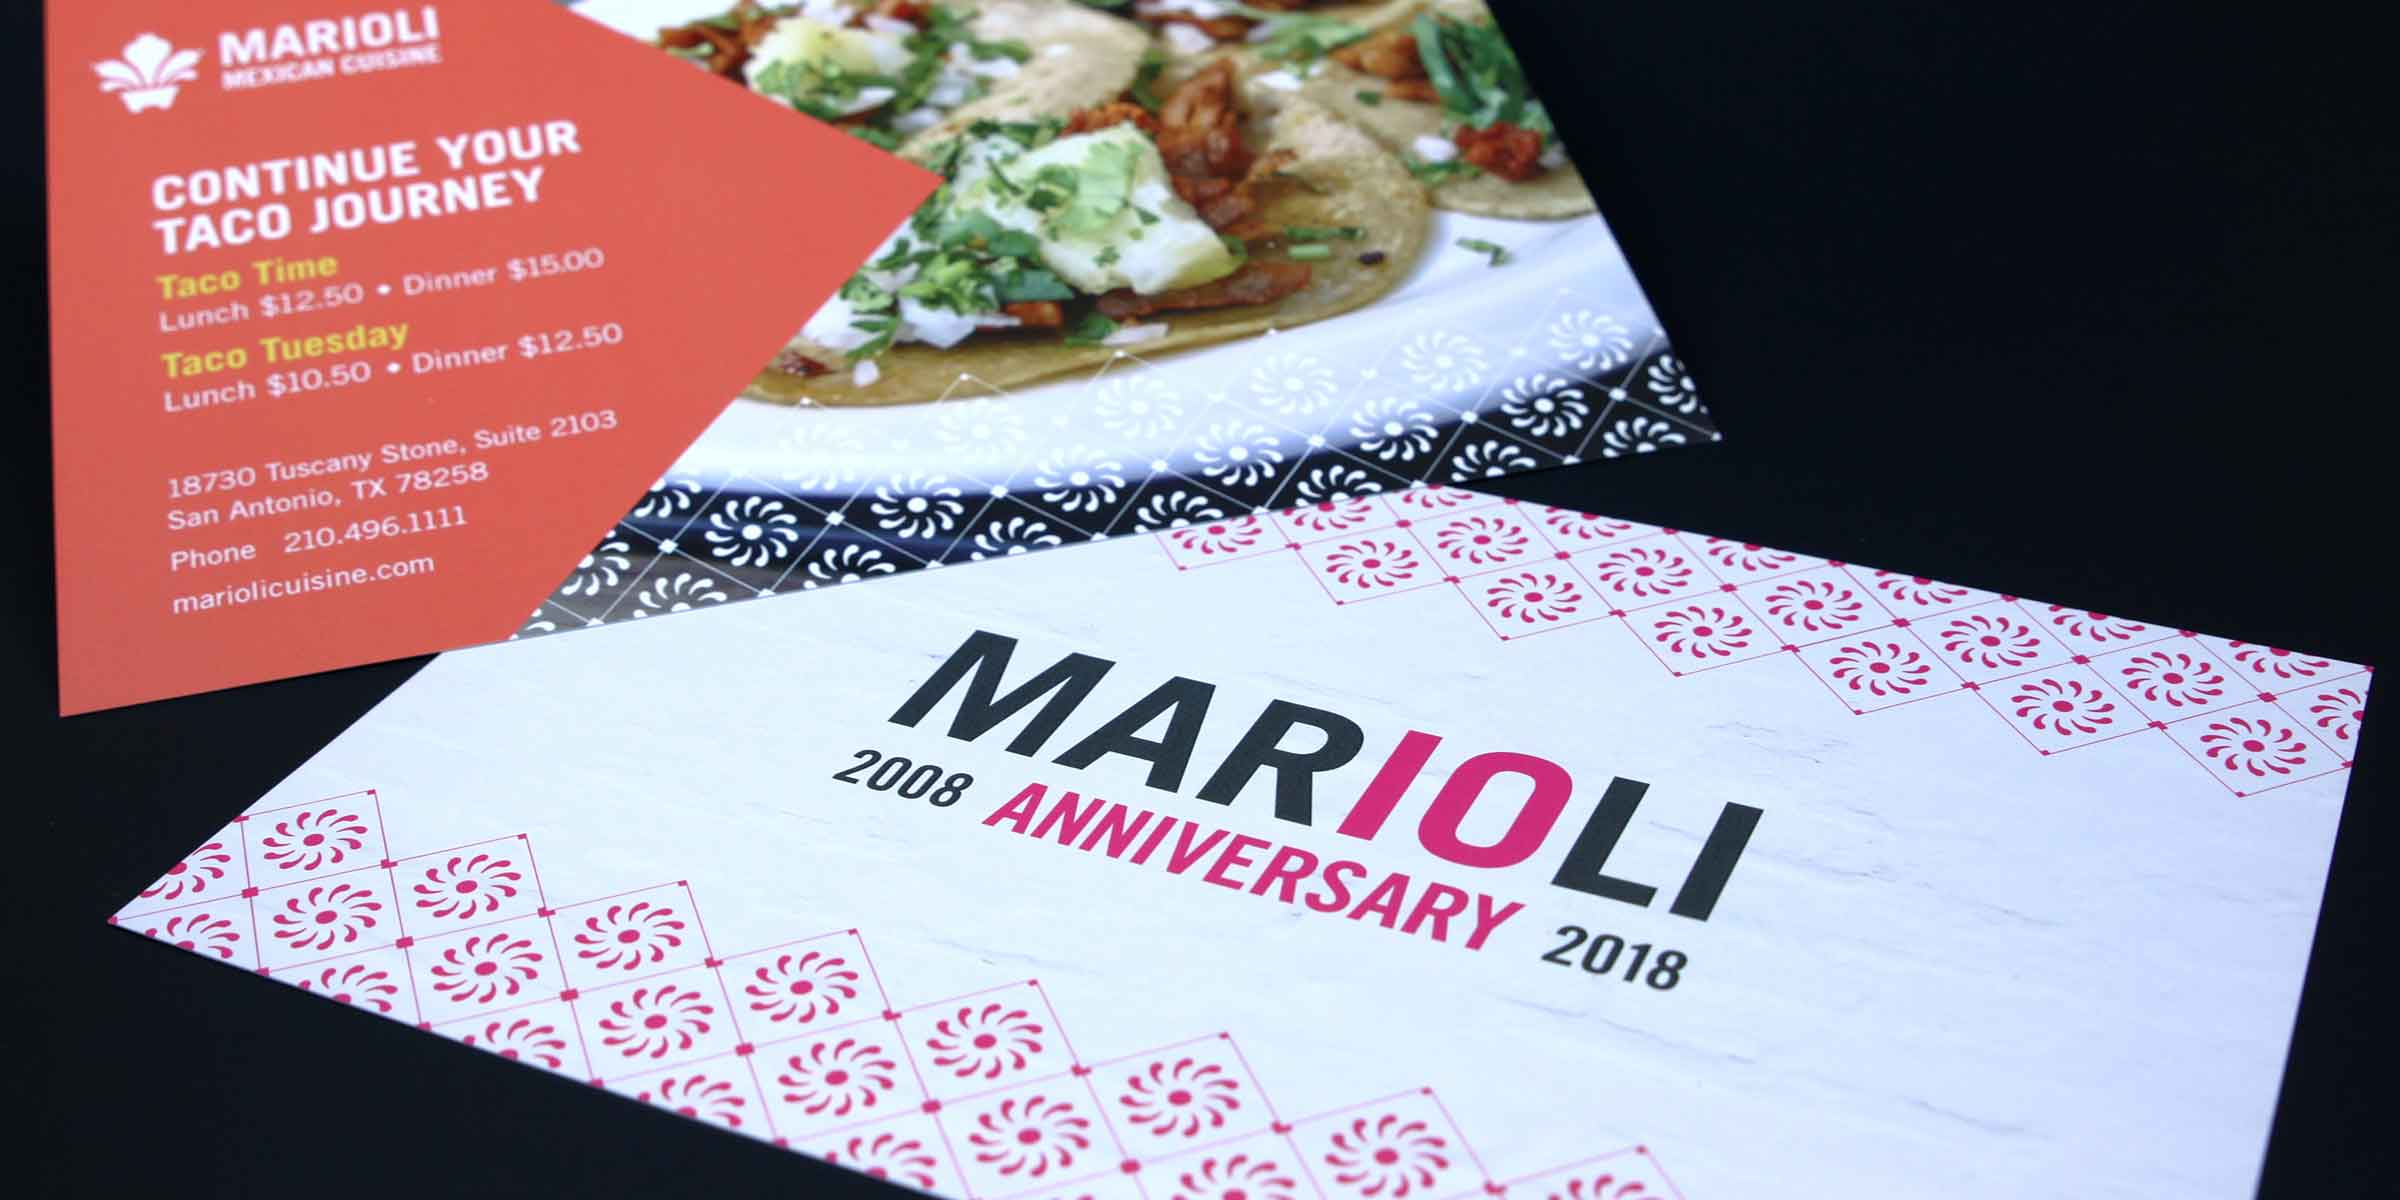 Marioli Multicultural Design And Branding Agency Based